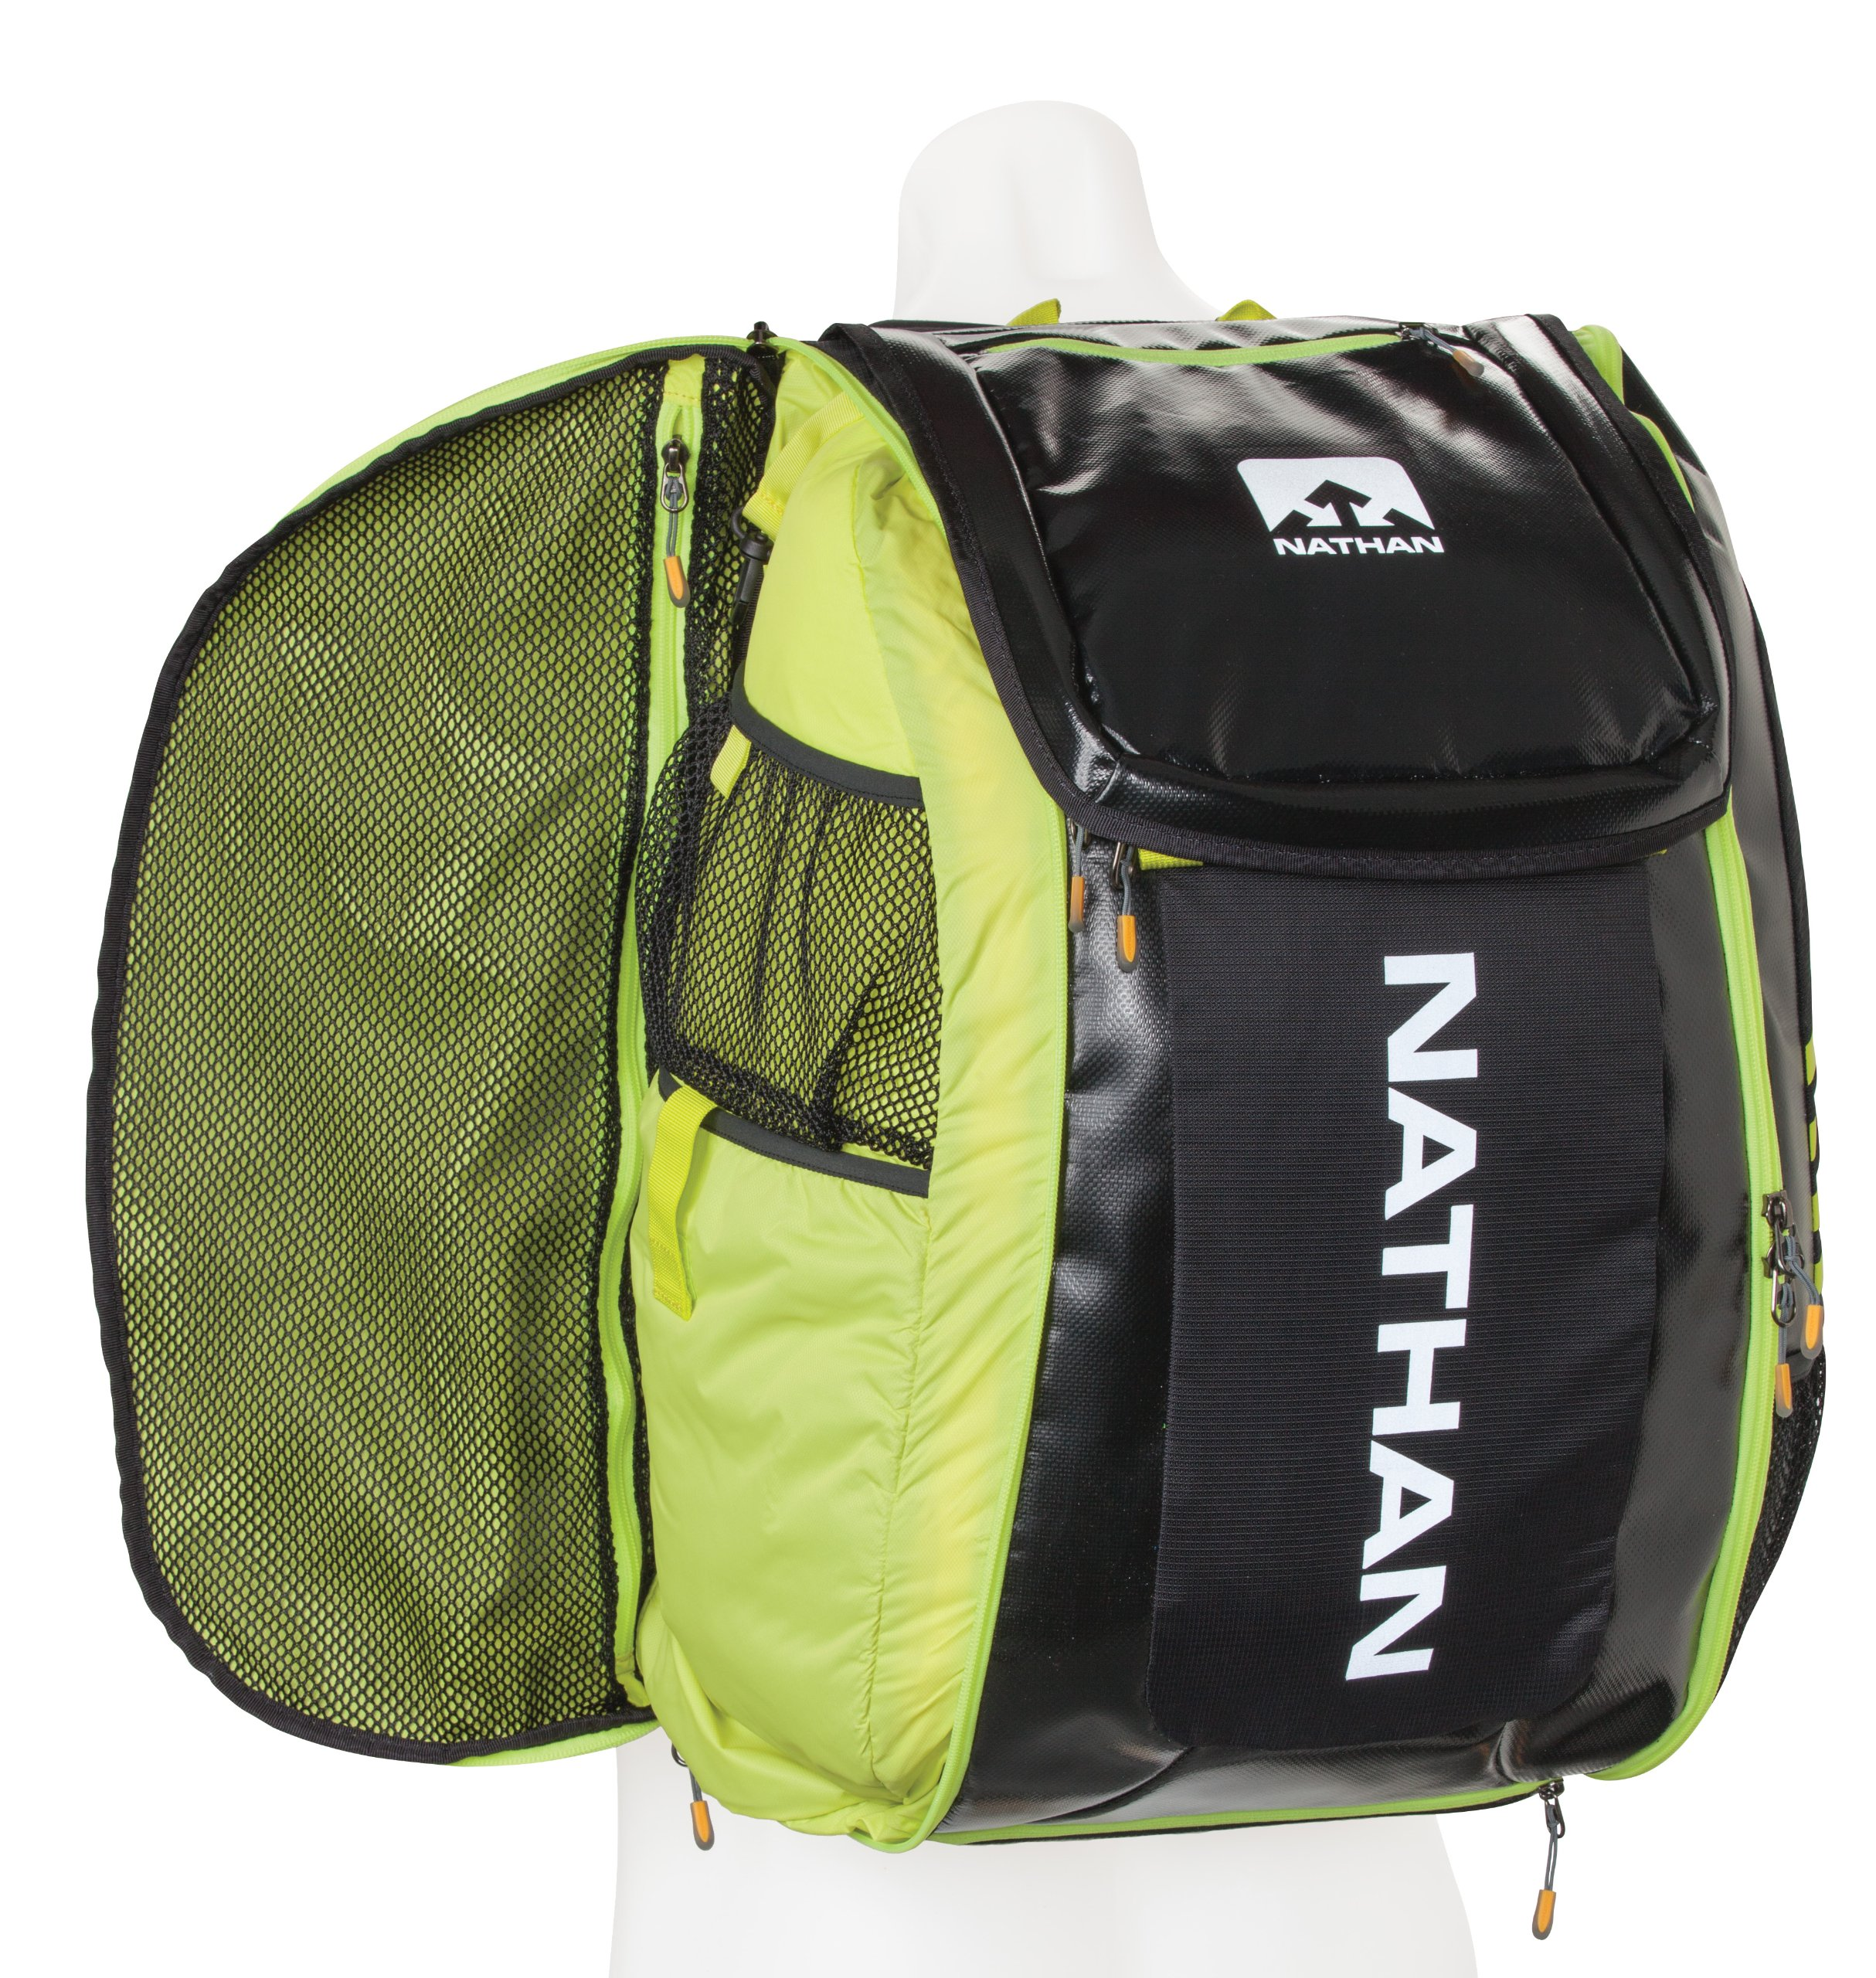 Nathan Flight Control Bag, Black/Sulphur Spring, One Size by Nathan (Image #2)